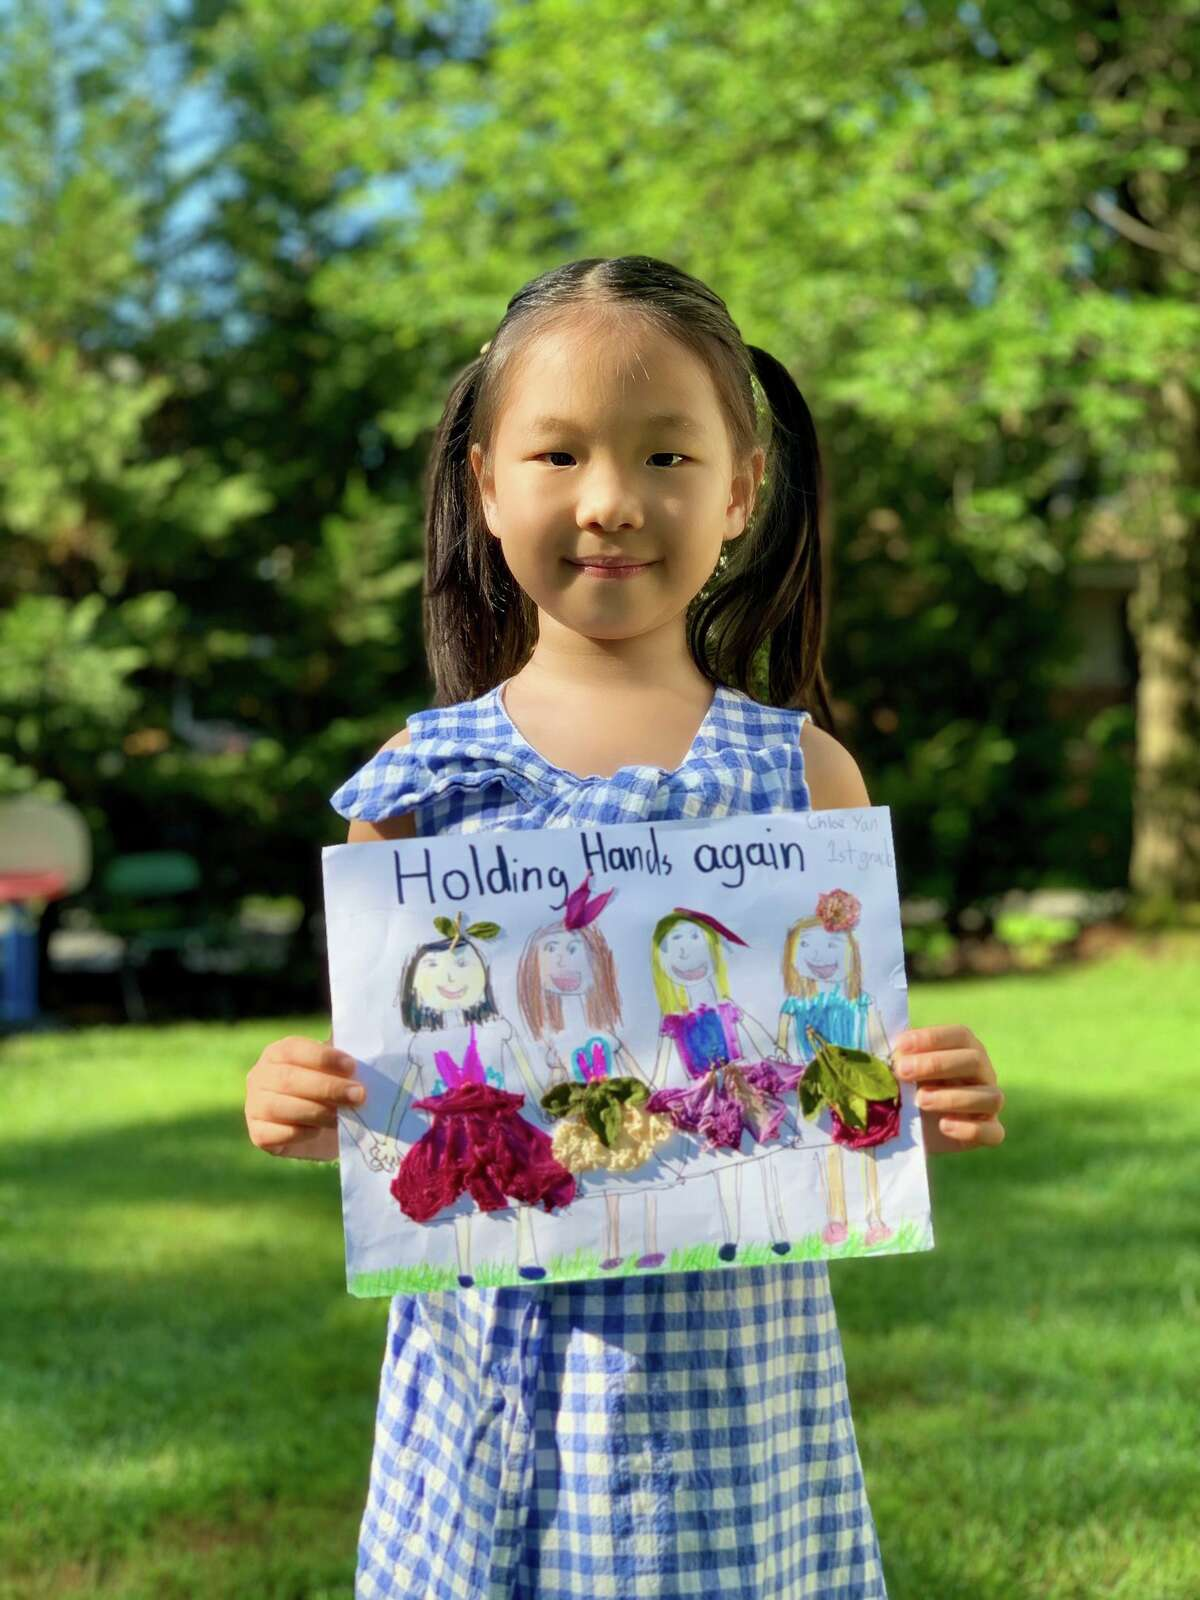 First-grader Chloe Yan with her award-winning entry in a 2020 Bruce Museum art contest seeking a response to the prompt: